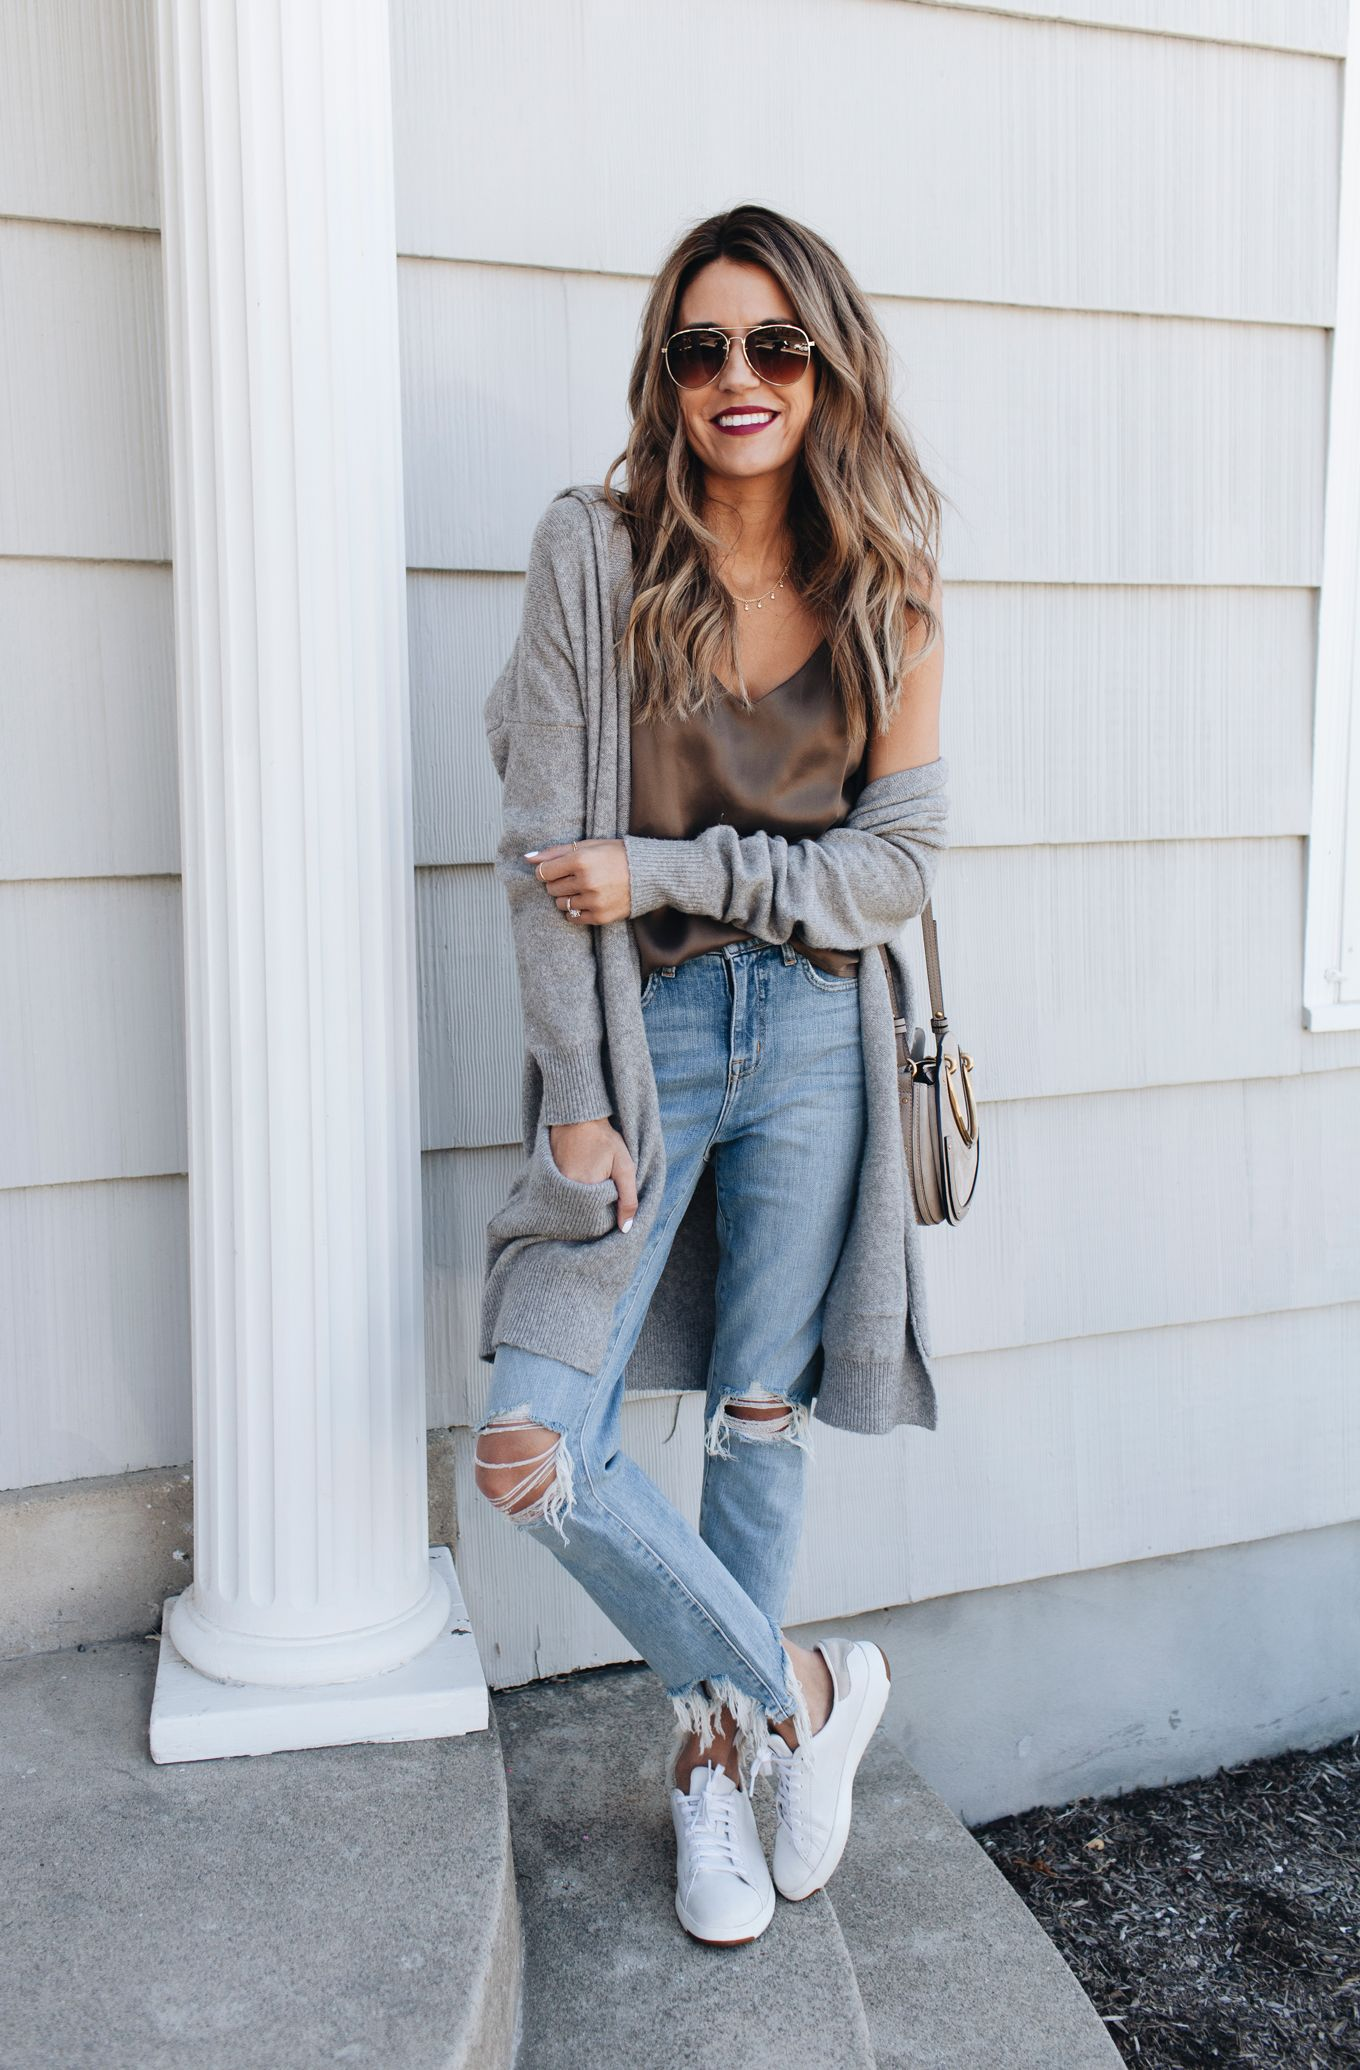 Pin by baby girl on style inspiration pinterest game changer